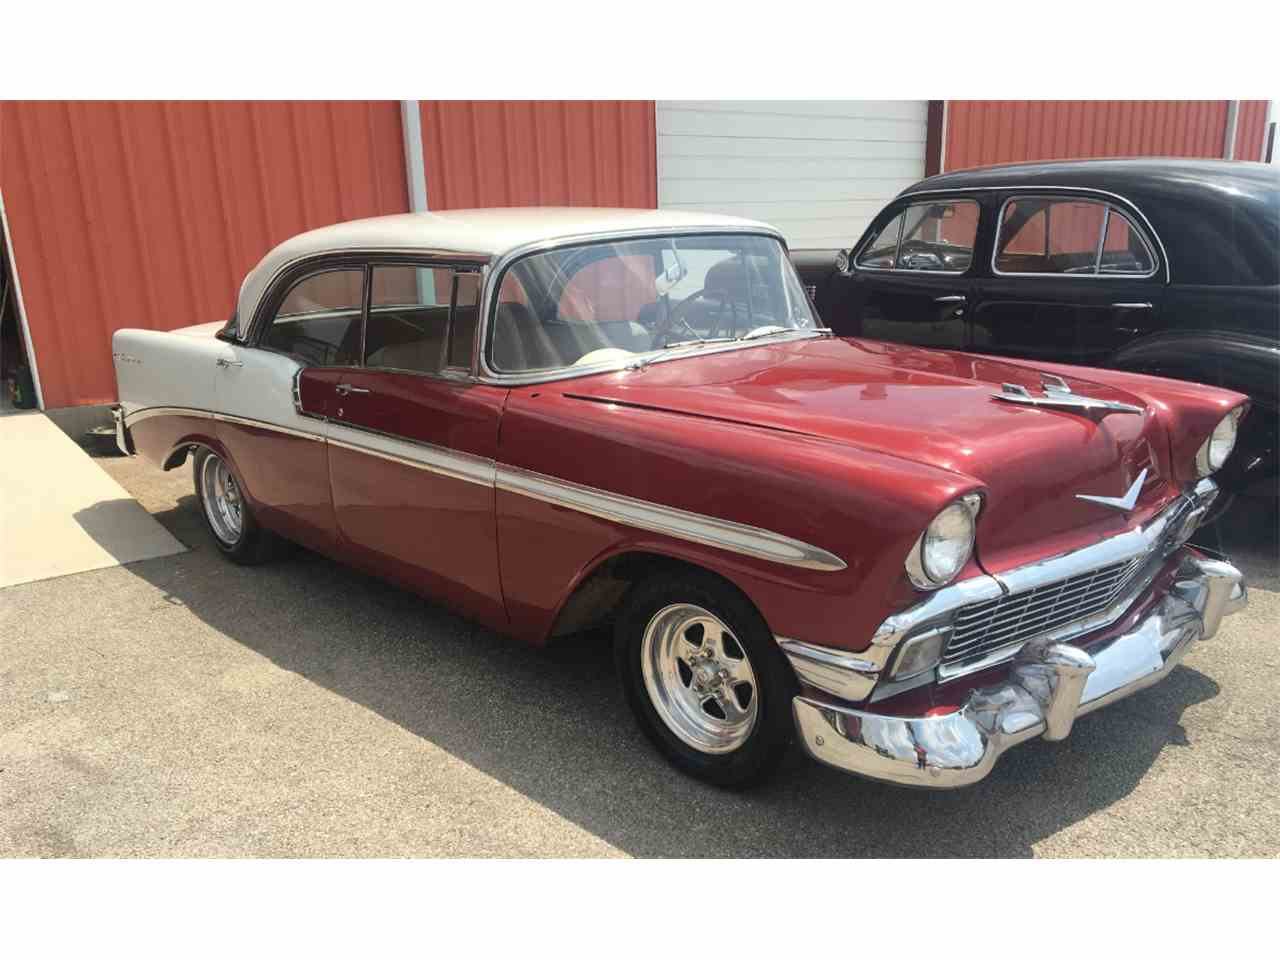 Chevrolet bel air hardtop for sale upcoming chevrolet - 1956 Chevrolet Bel Air 971732